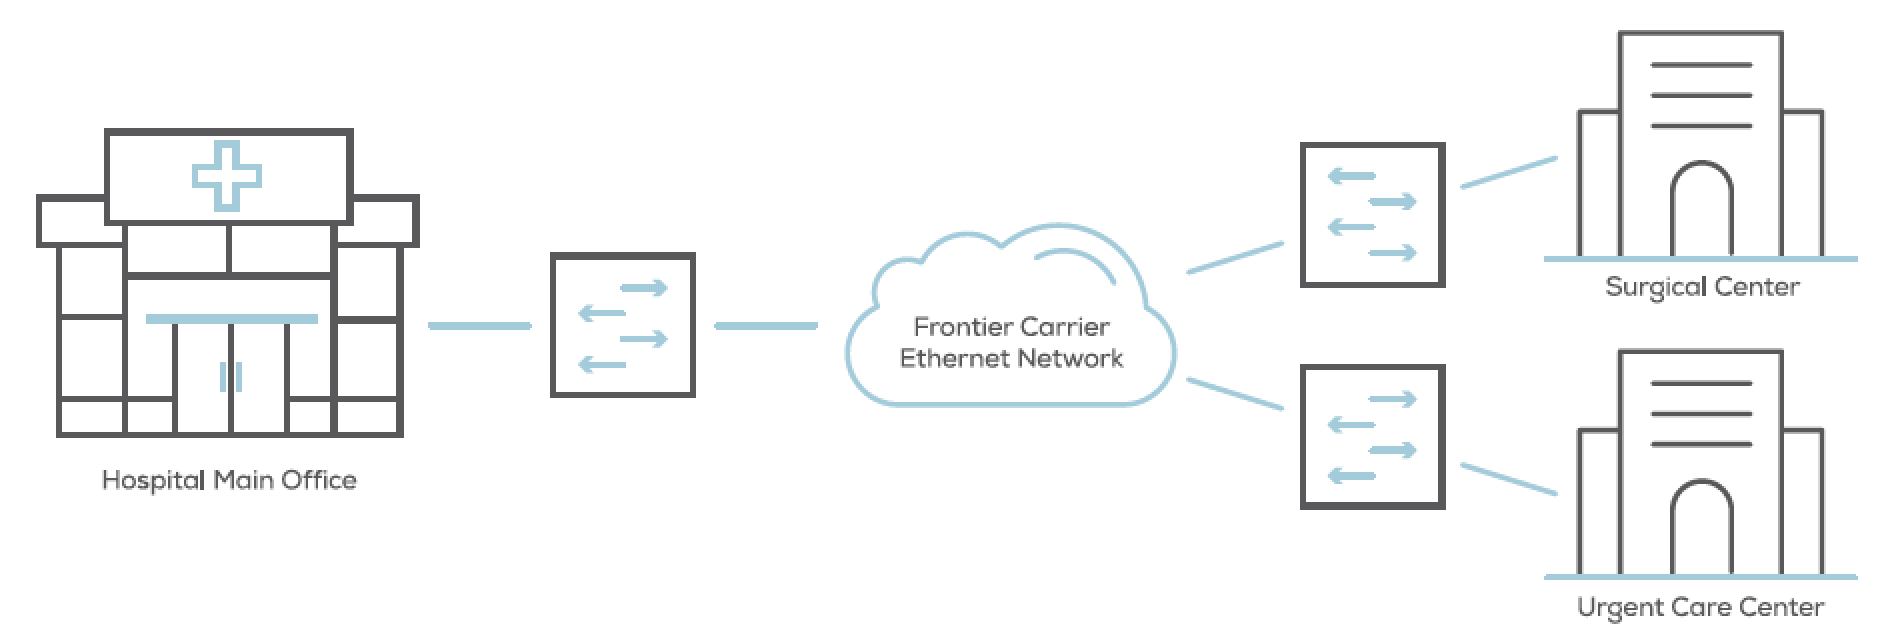 Carrier ethernet reduces complexity